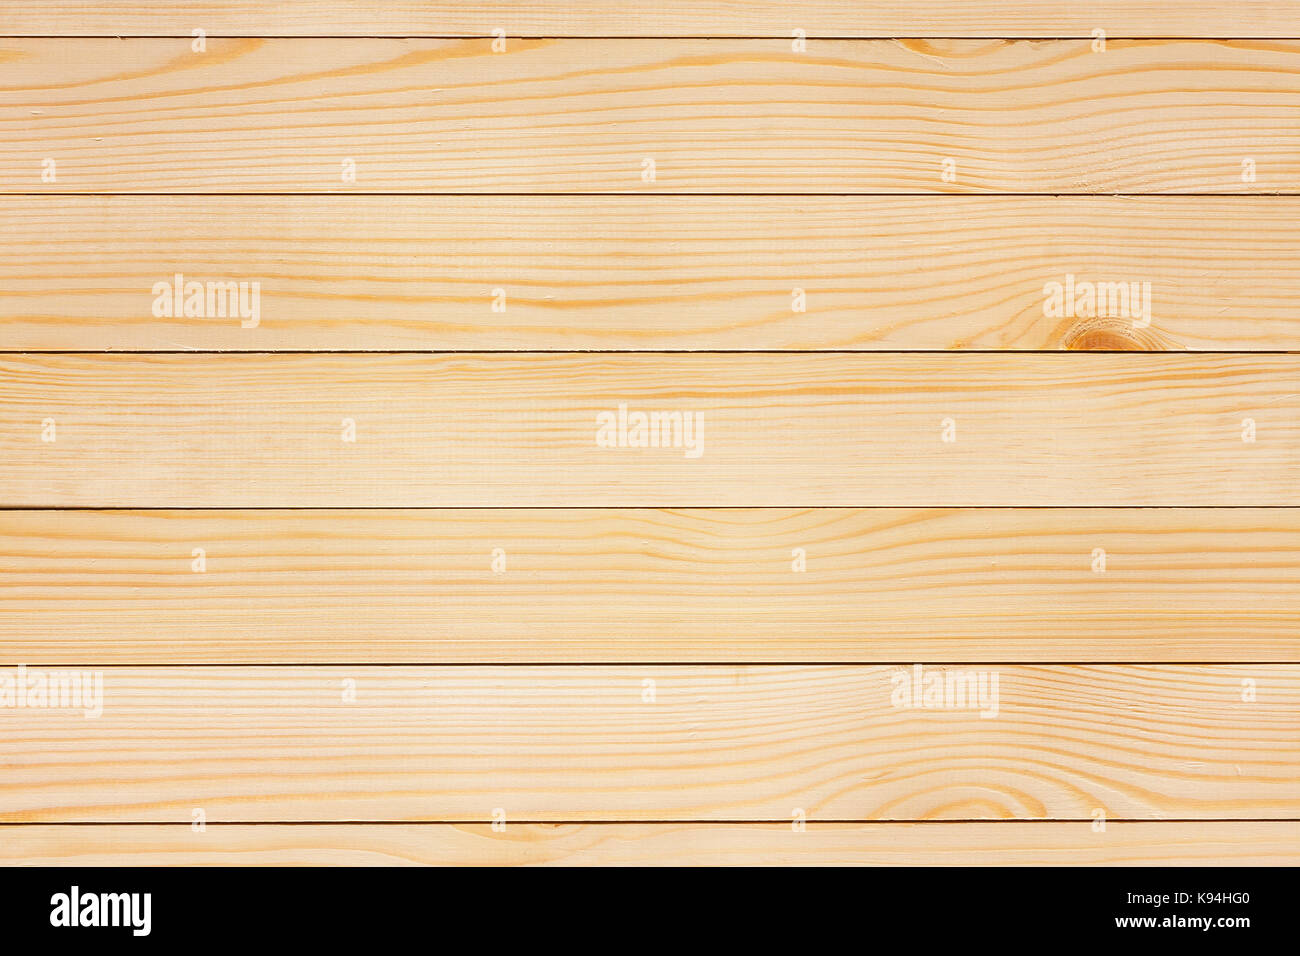 Wooden table texture or background. Top view - Stock Image